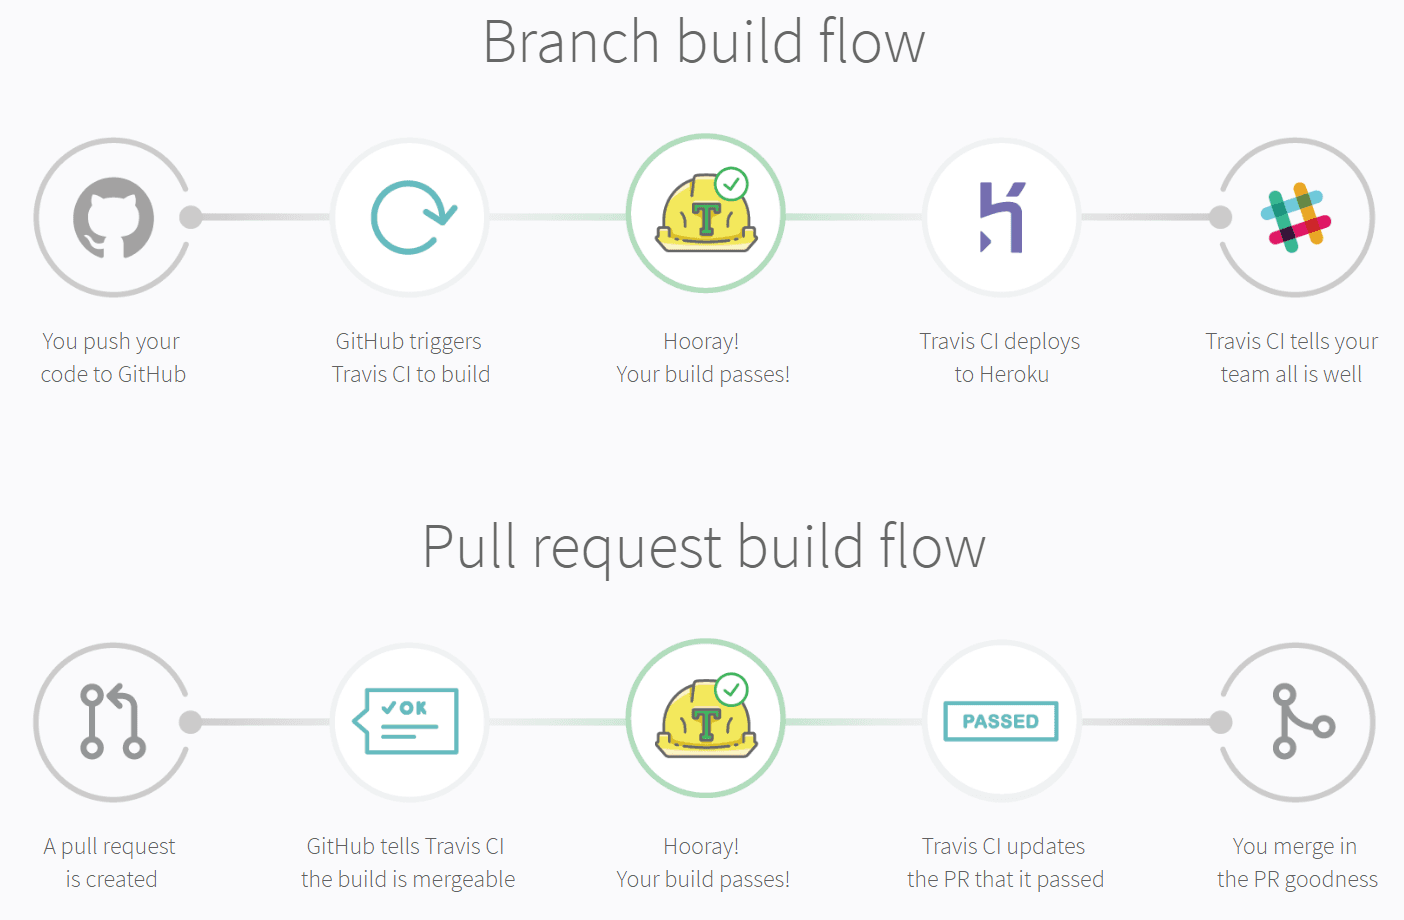 Travis CI branch build flow and pull request build flow with GitHub